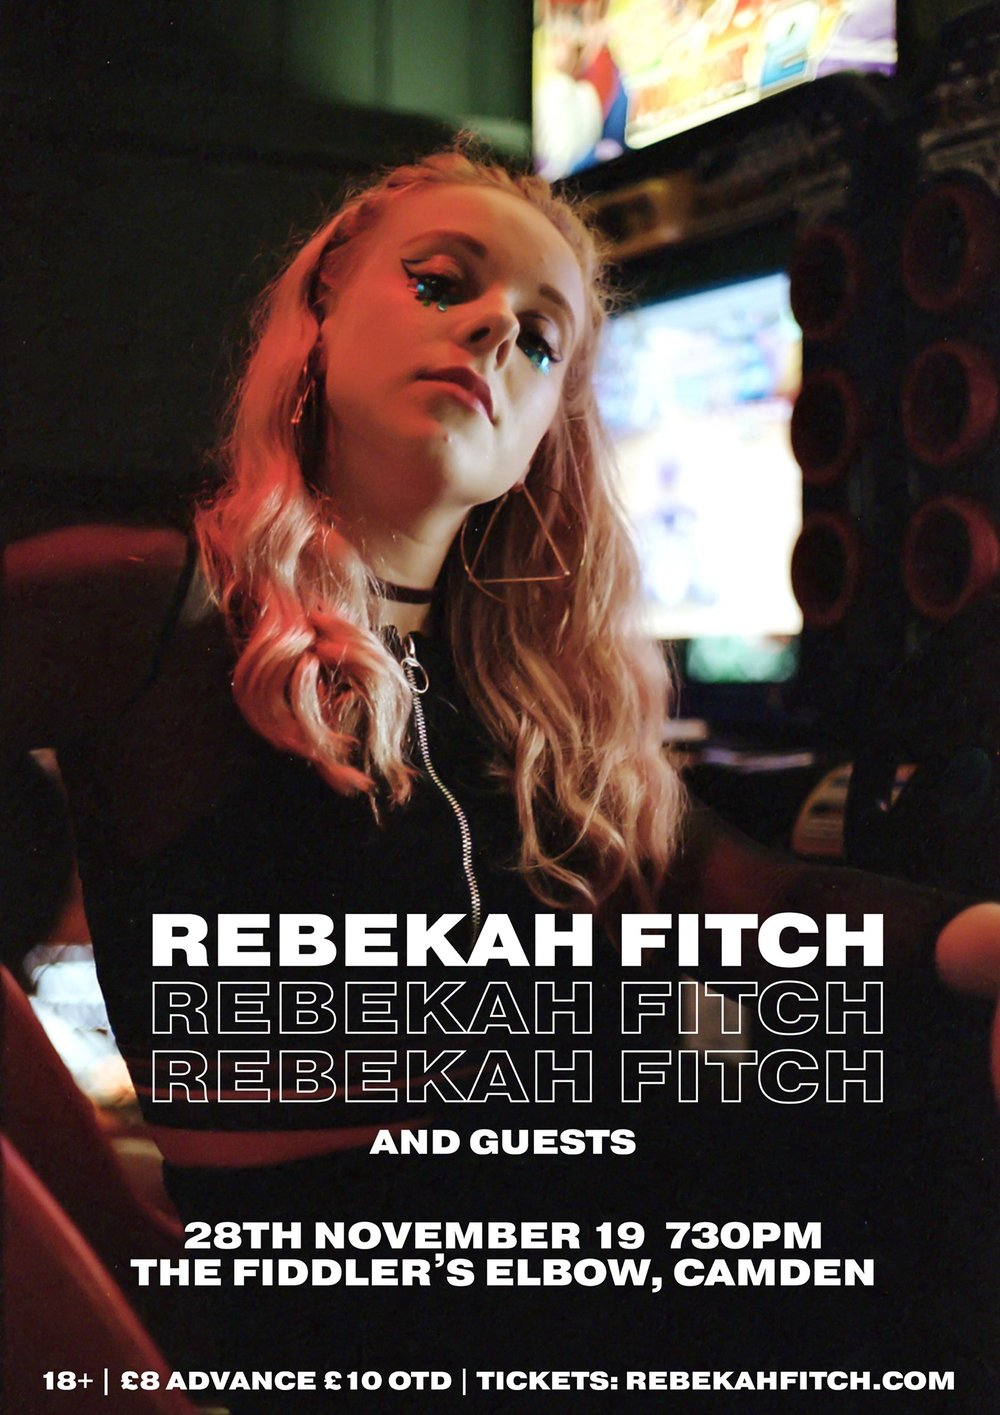 Rebekah Fitch + Guests at The Fiddler's Elbow promotional image